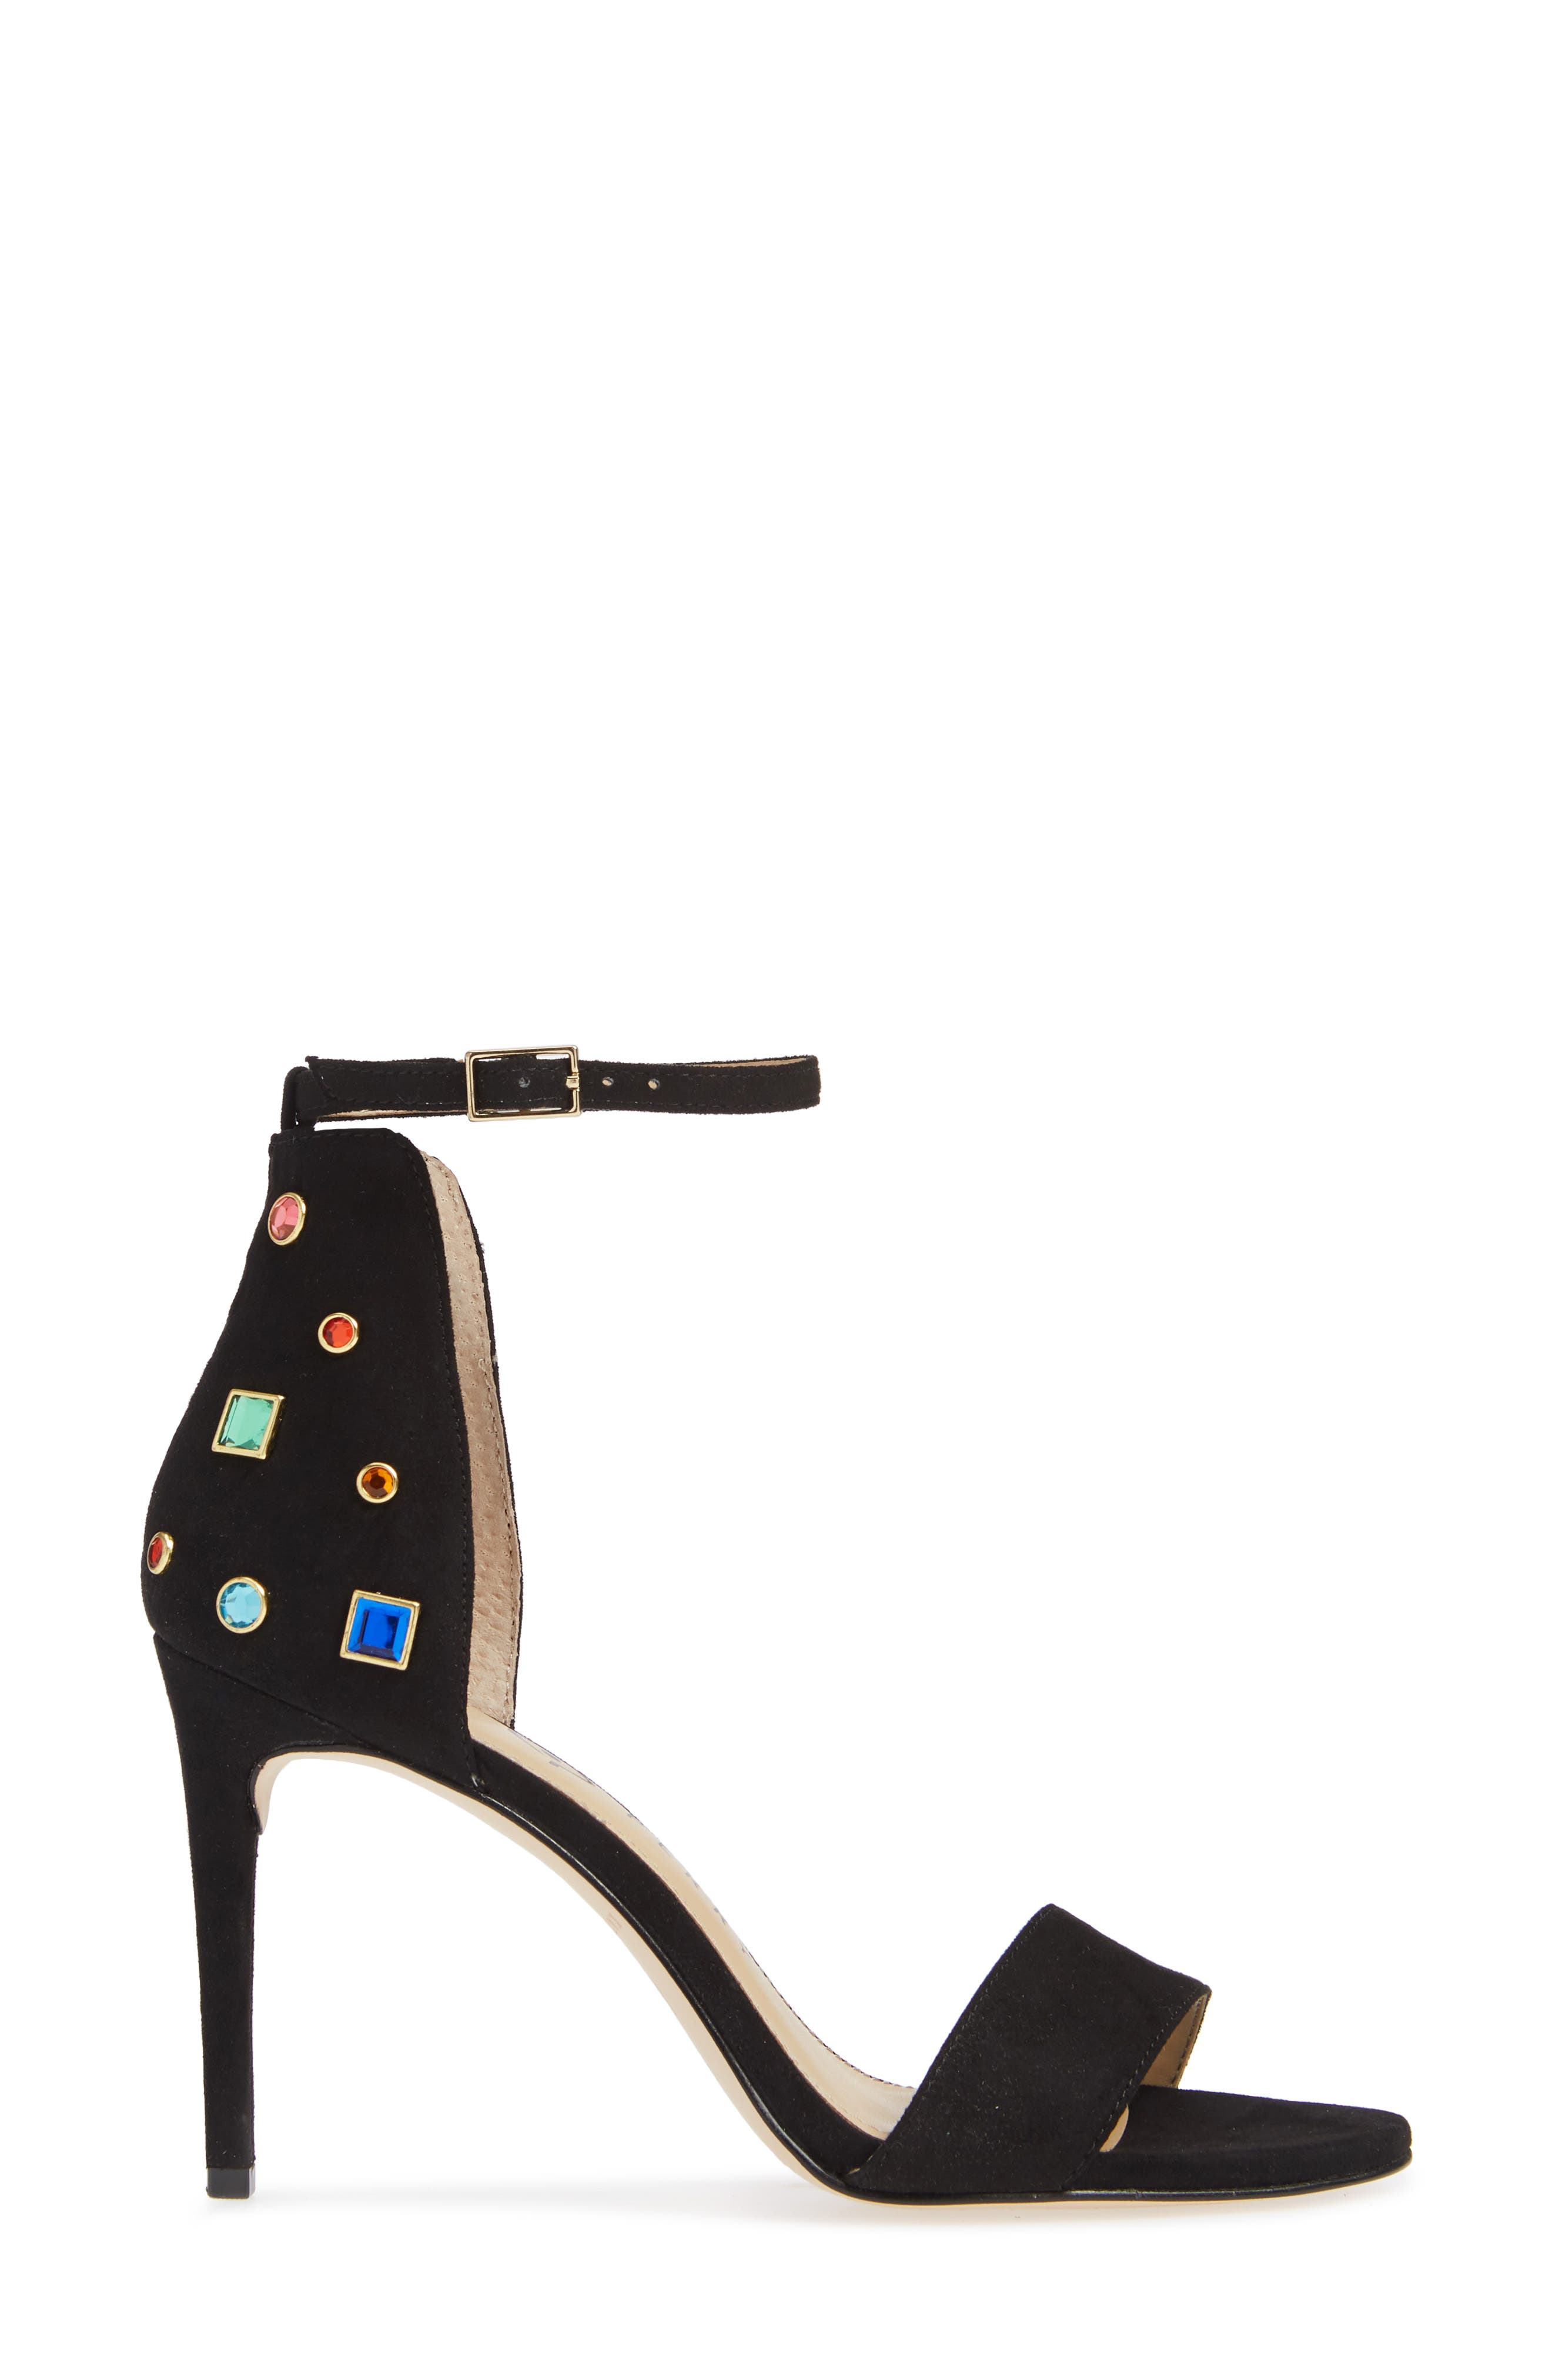 KATY PERRY, Jewel Ankle Strap Sandal, Alternate thumbnail 3, color, 001